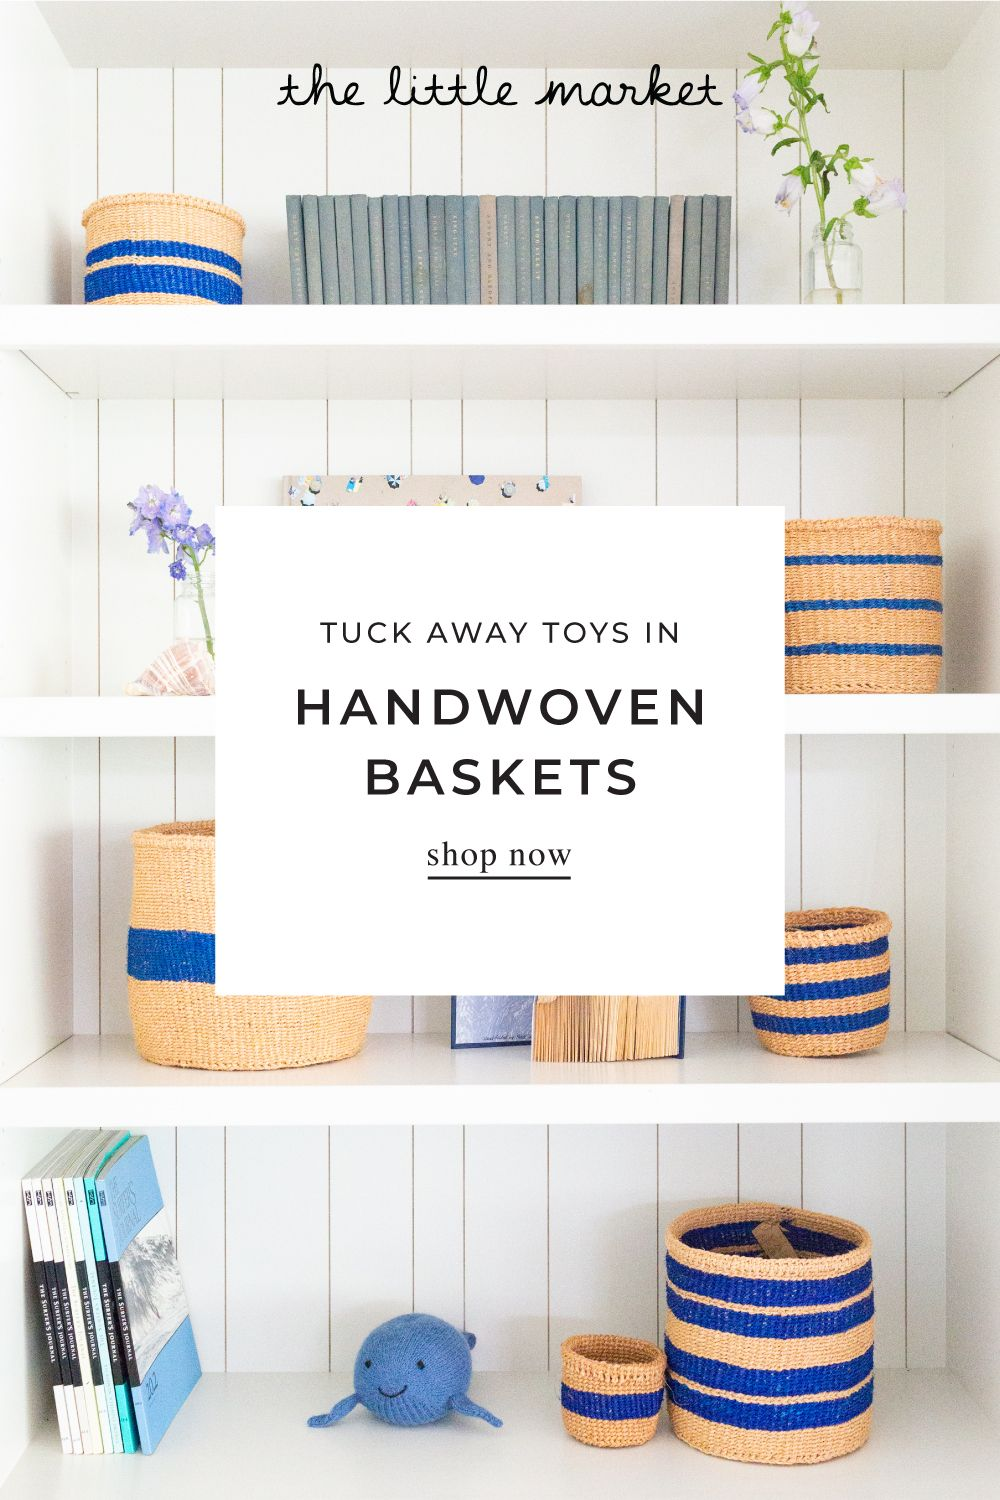 Kids Room + Toys | Organization | Handmade | Colorful + Neutral